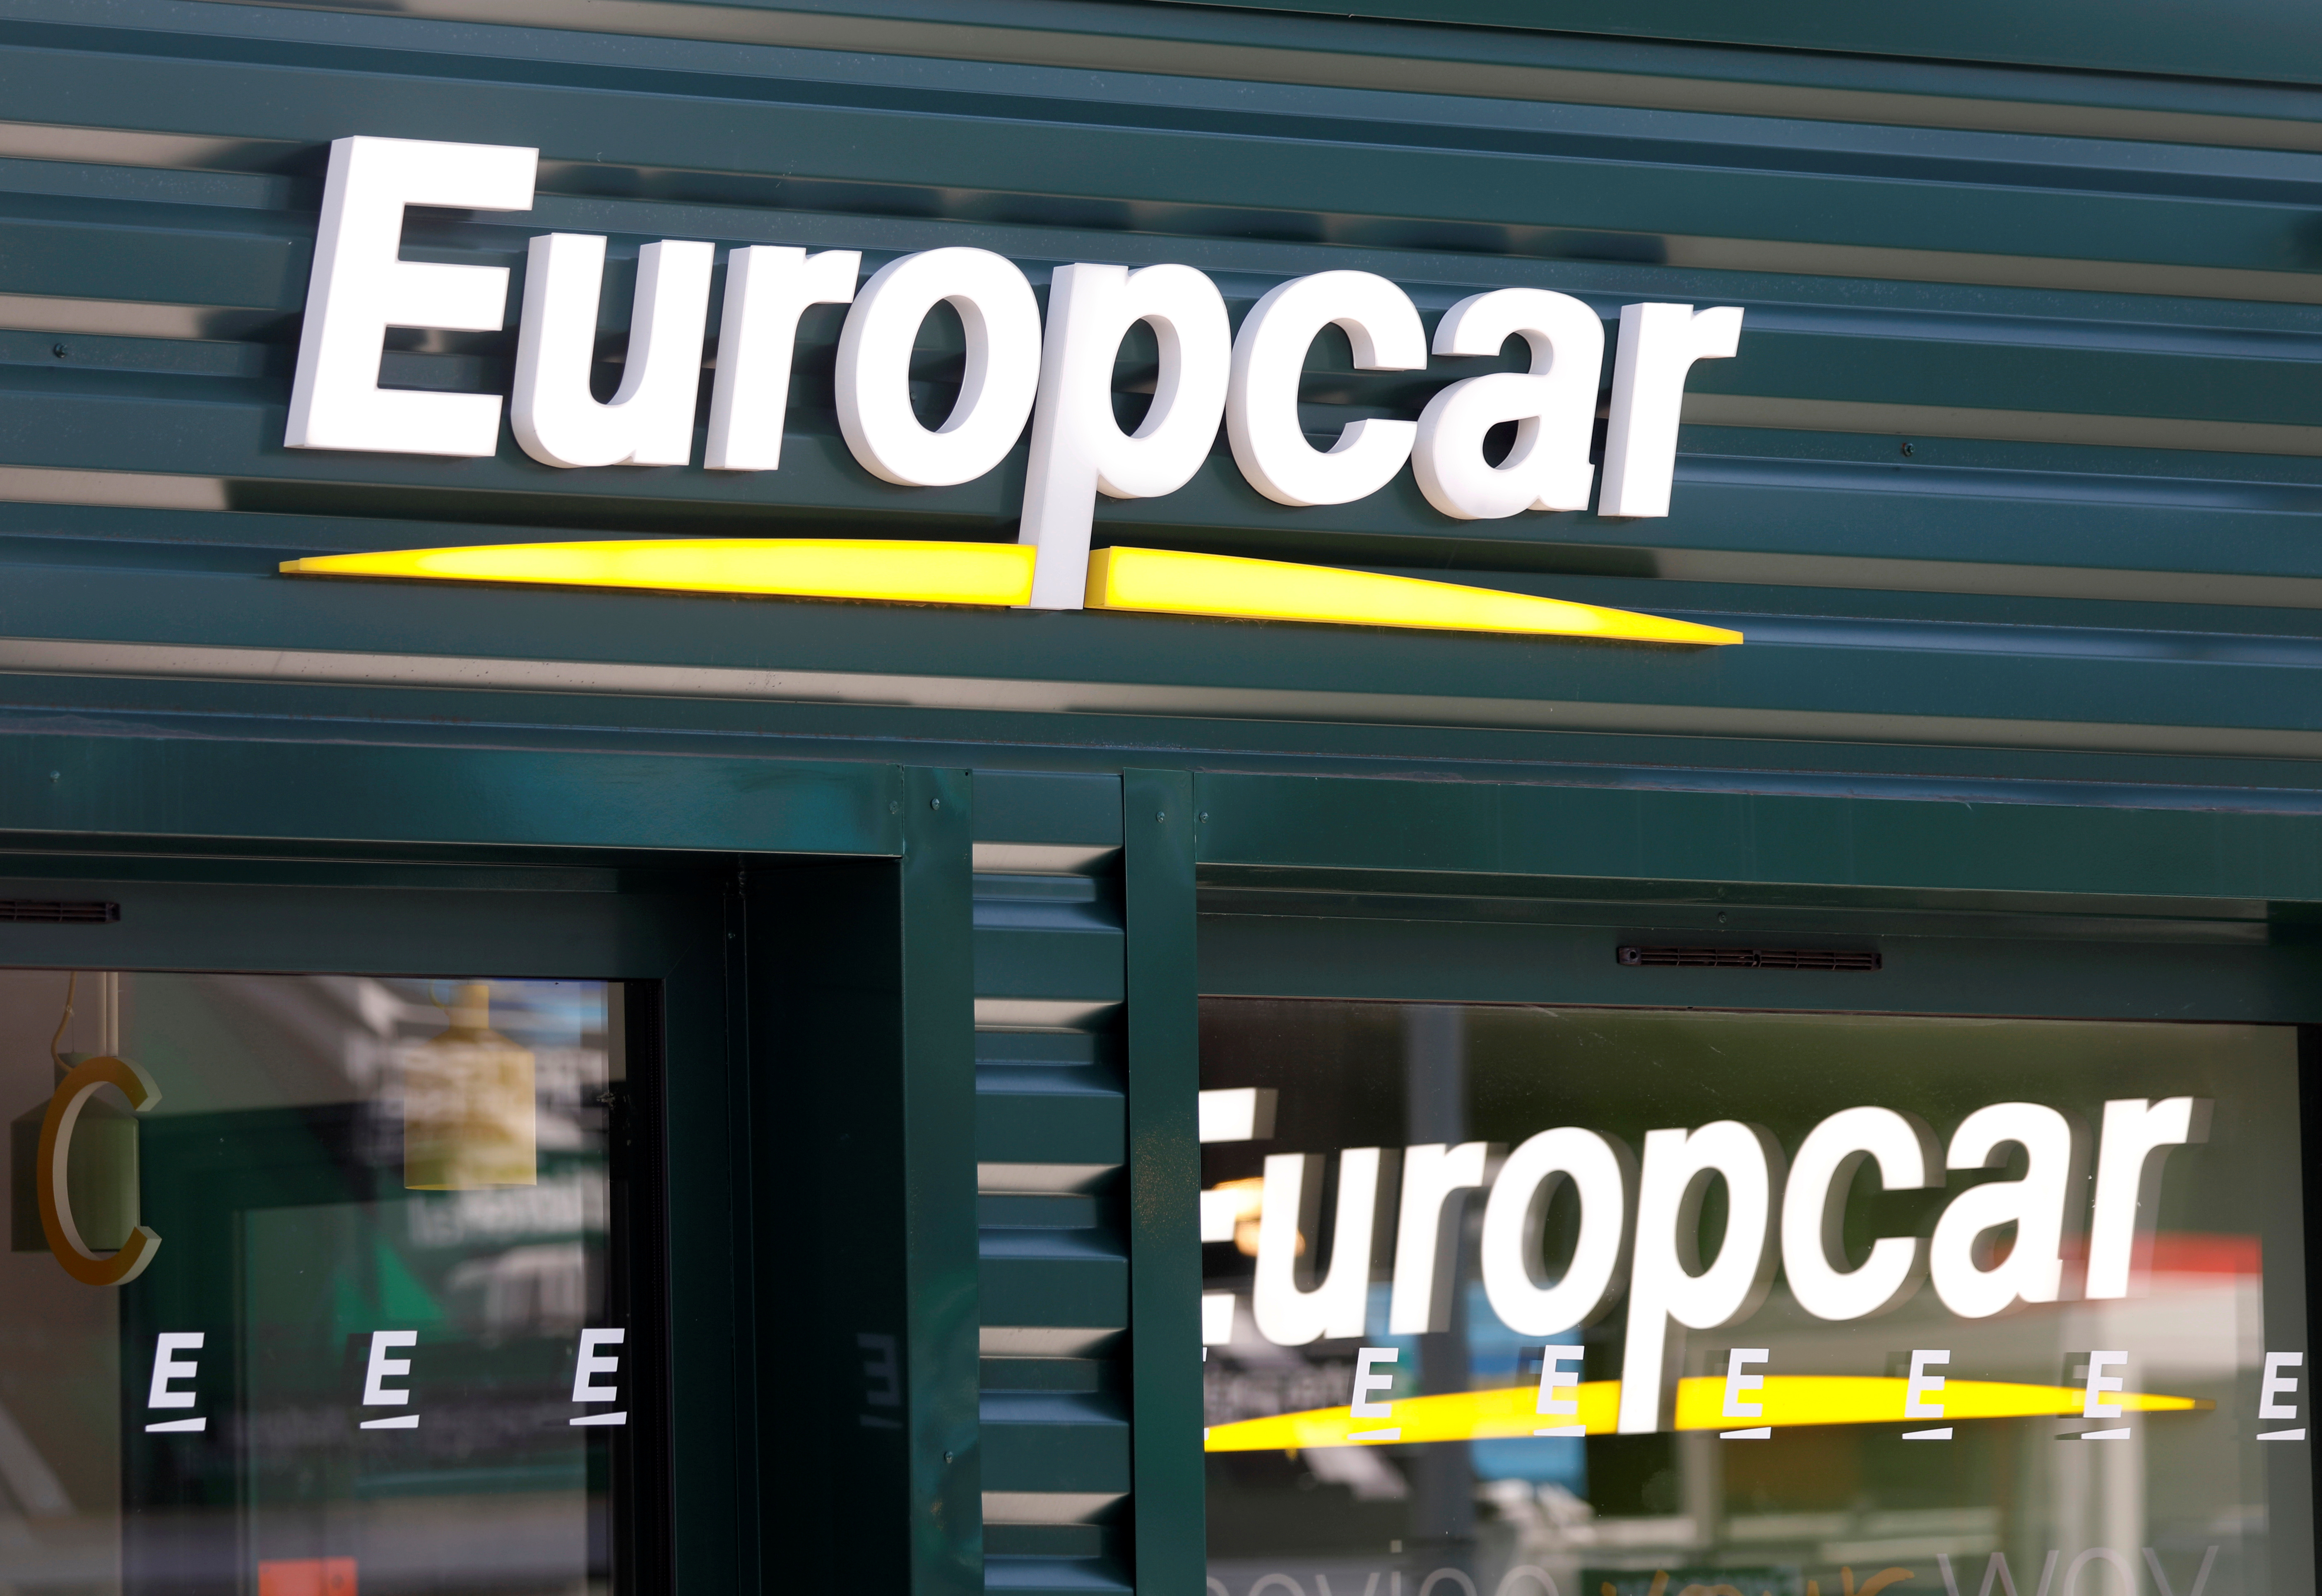 The logo of car rental company Europcar is seen outside Paris Charles de Gaulle airport in Roissy-en-France during the outbreak of the coronavirus disease (COVID-19) in France May 19, 2020.  REUTERS/Charles Platiau